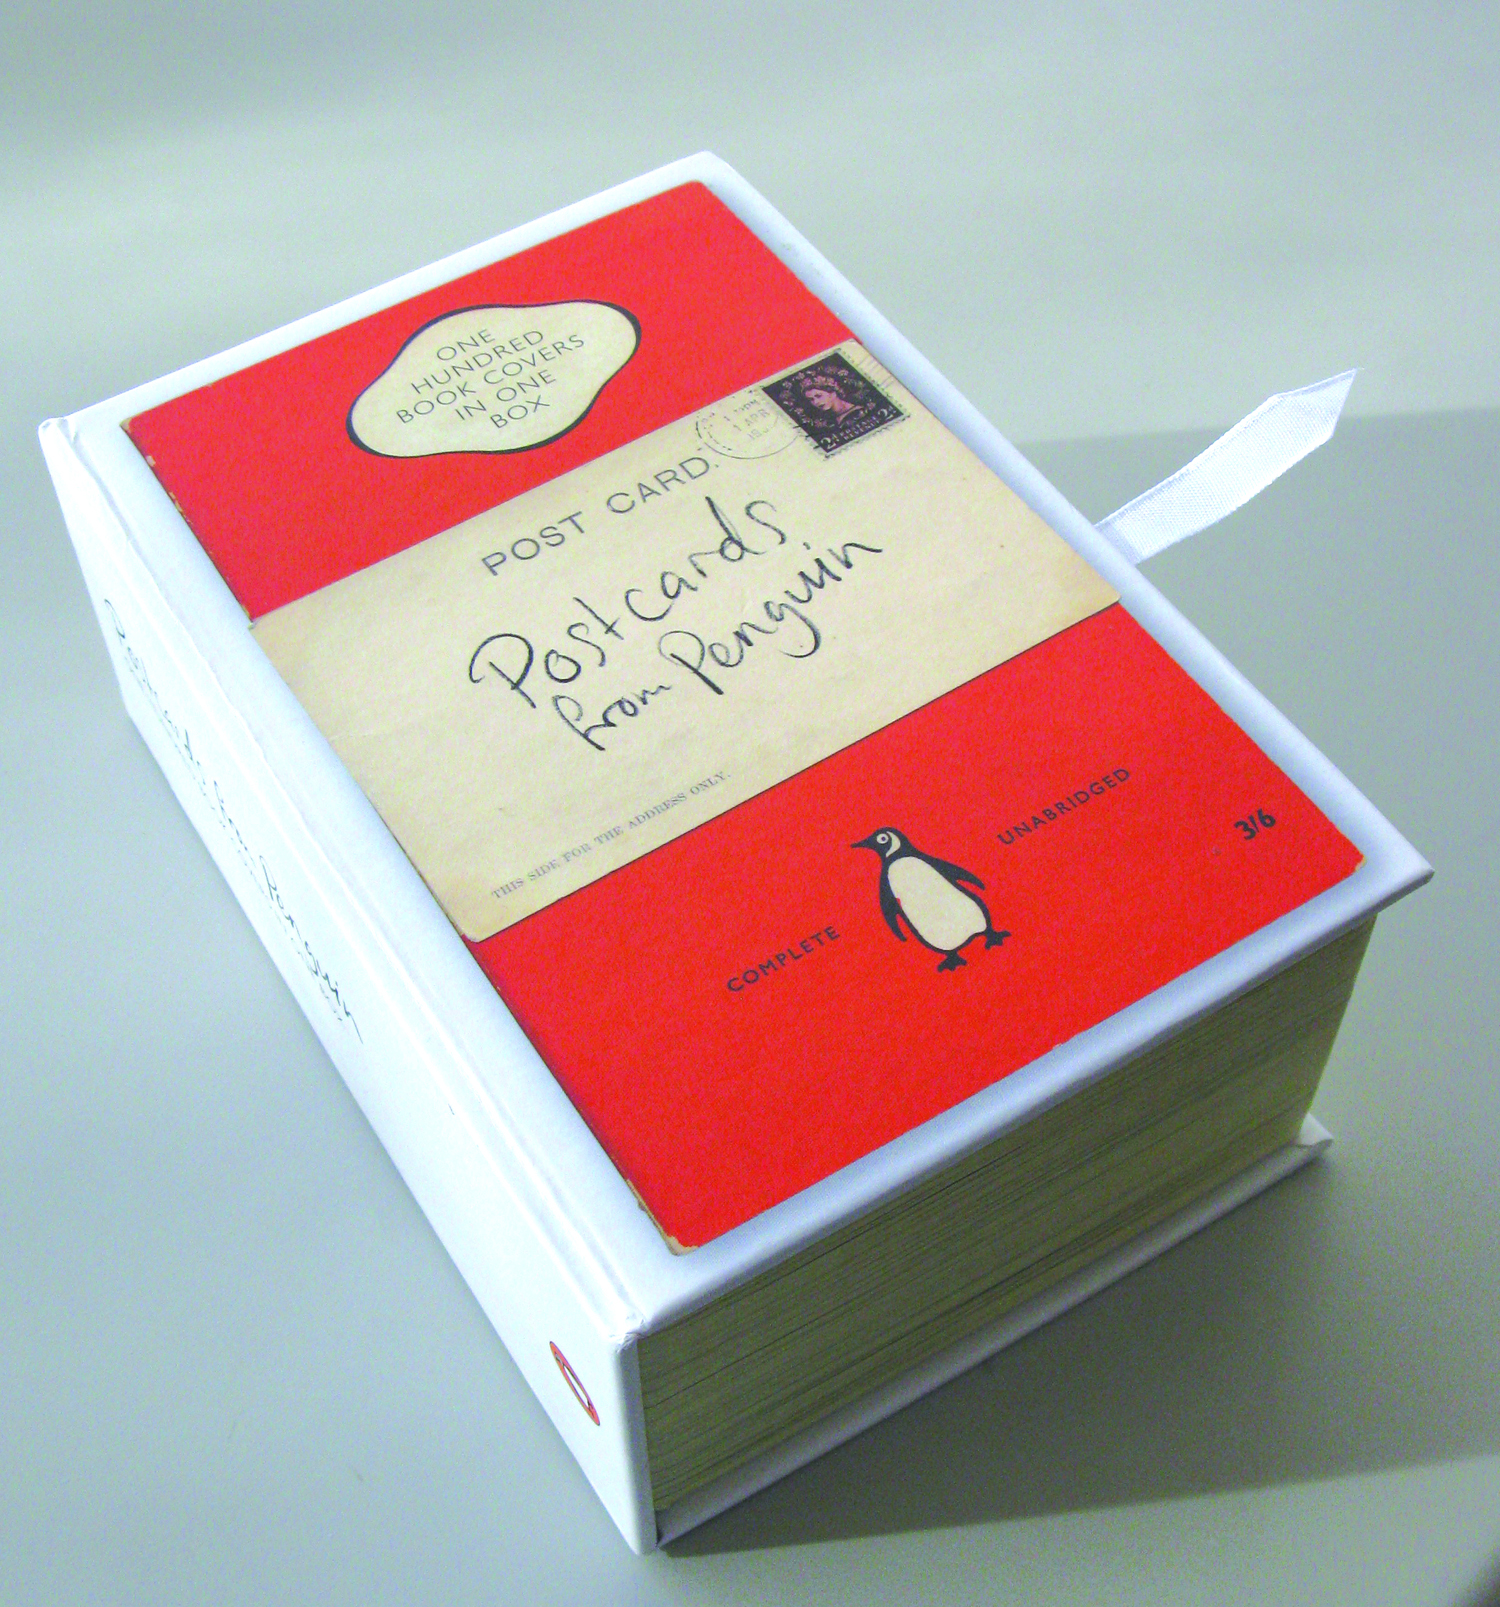 Original Penguin Book Covers : Postcards from penguin one hundred book covers in box